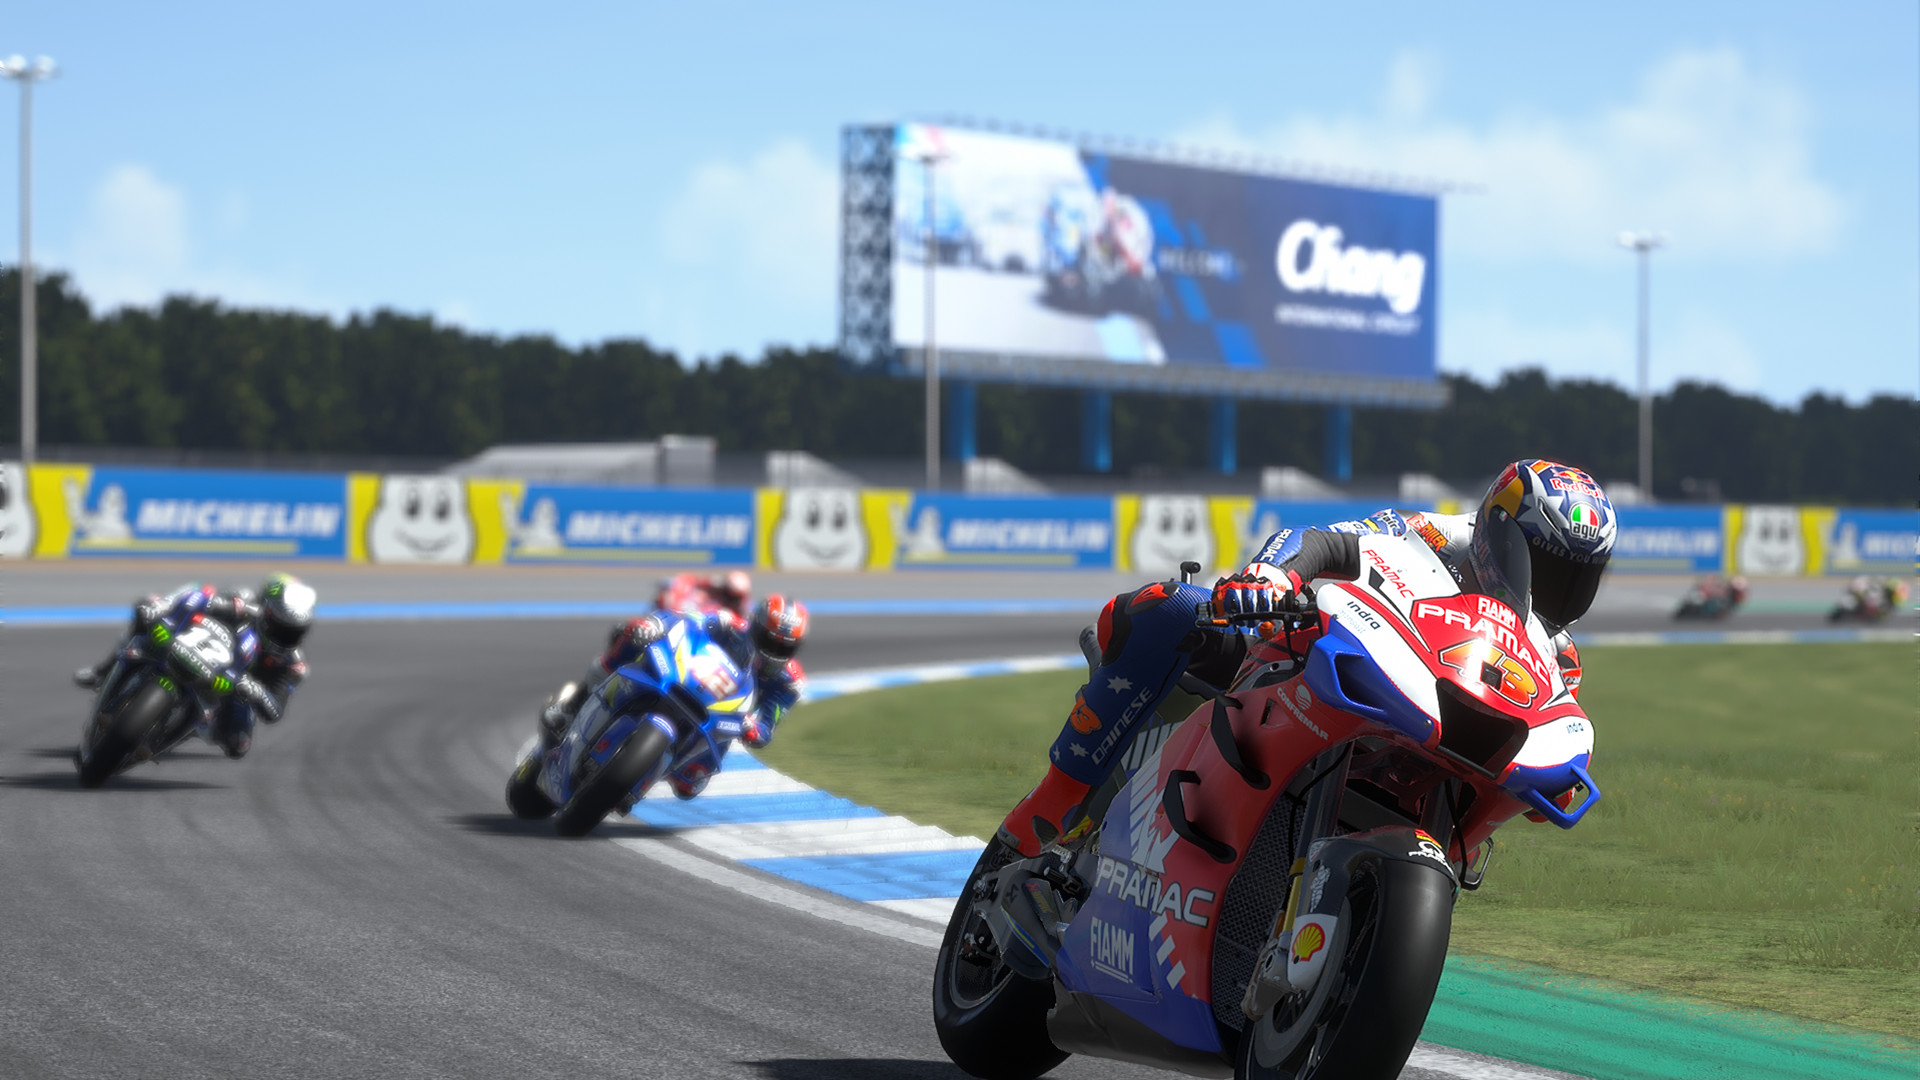 MotoGP 19 è disponibile da oggi per PS4, Xbox One e PC